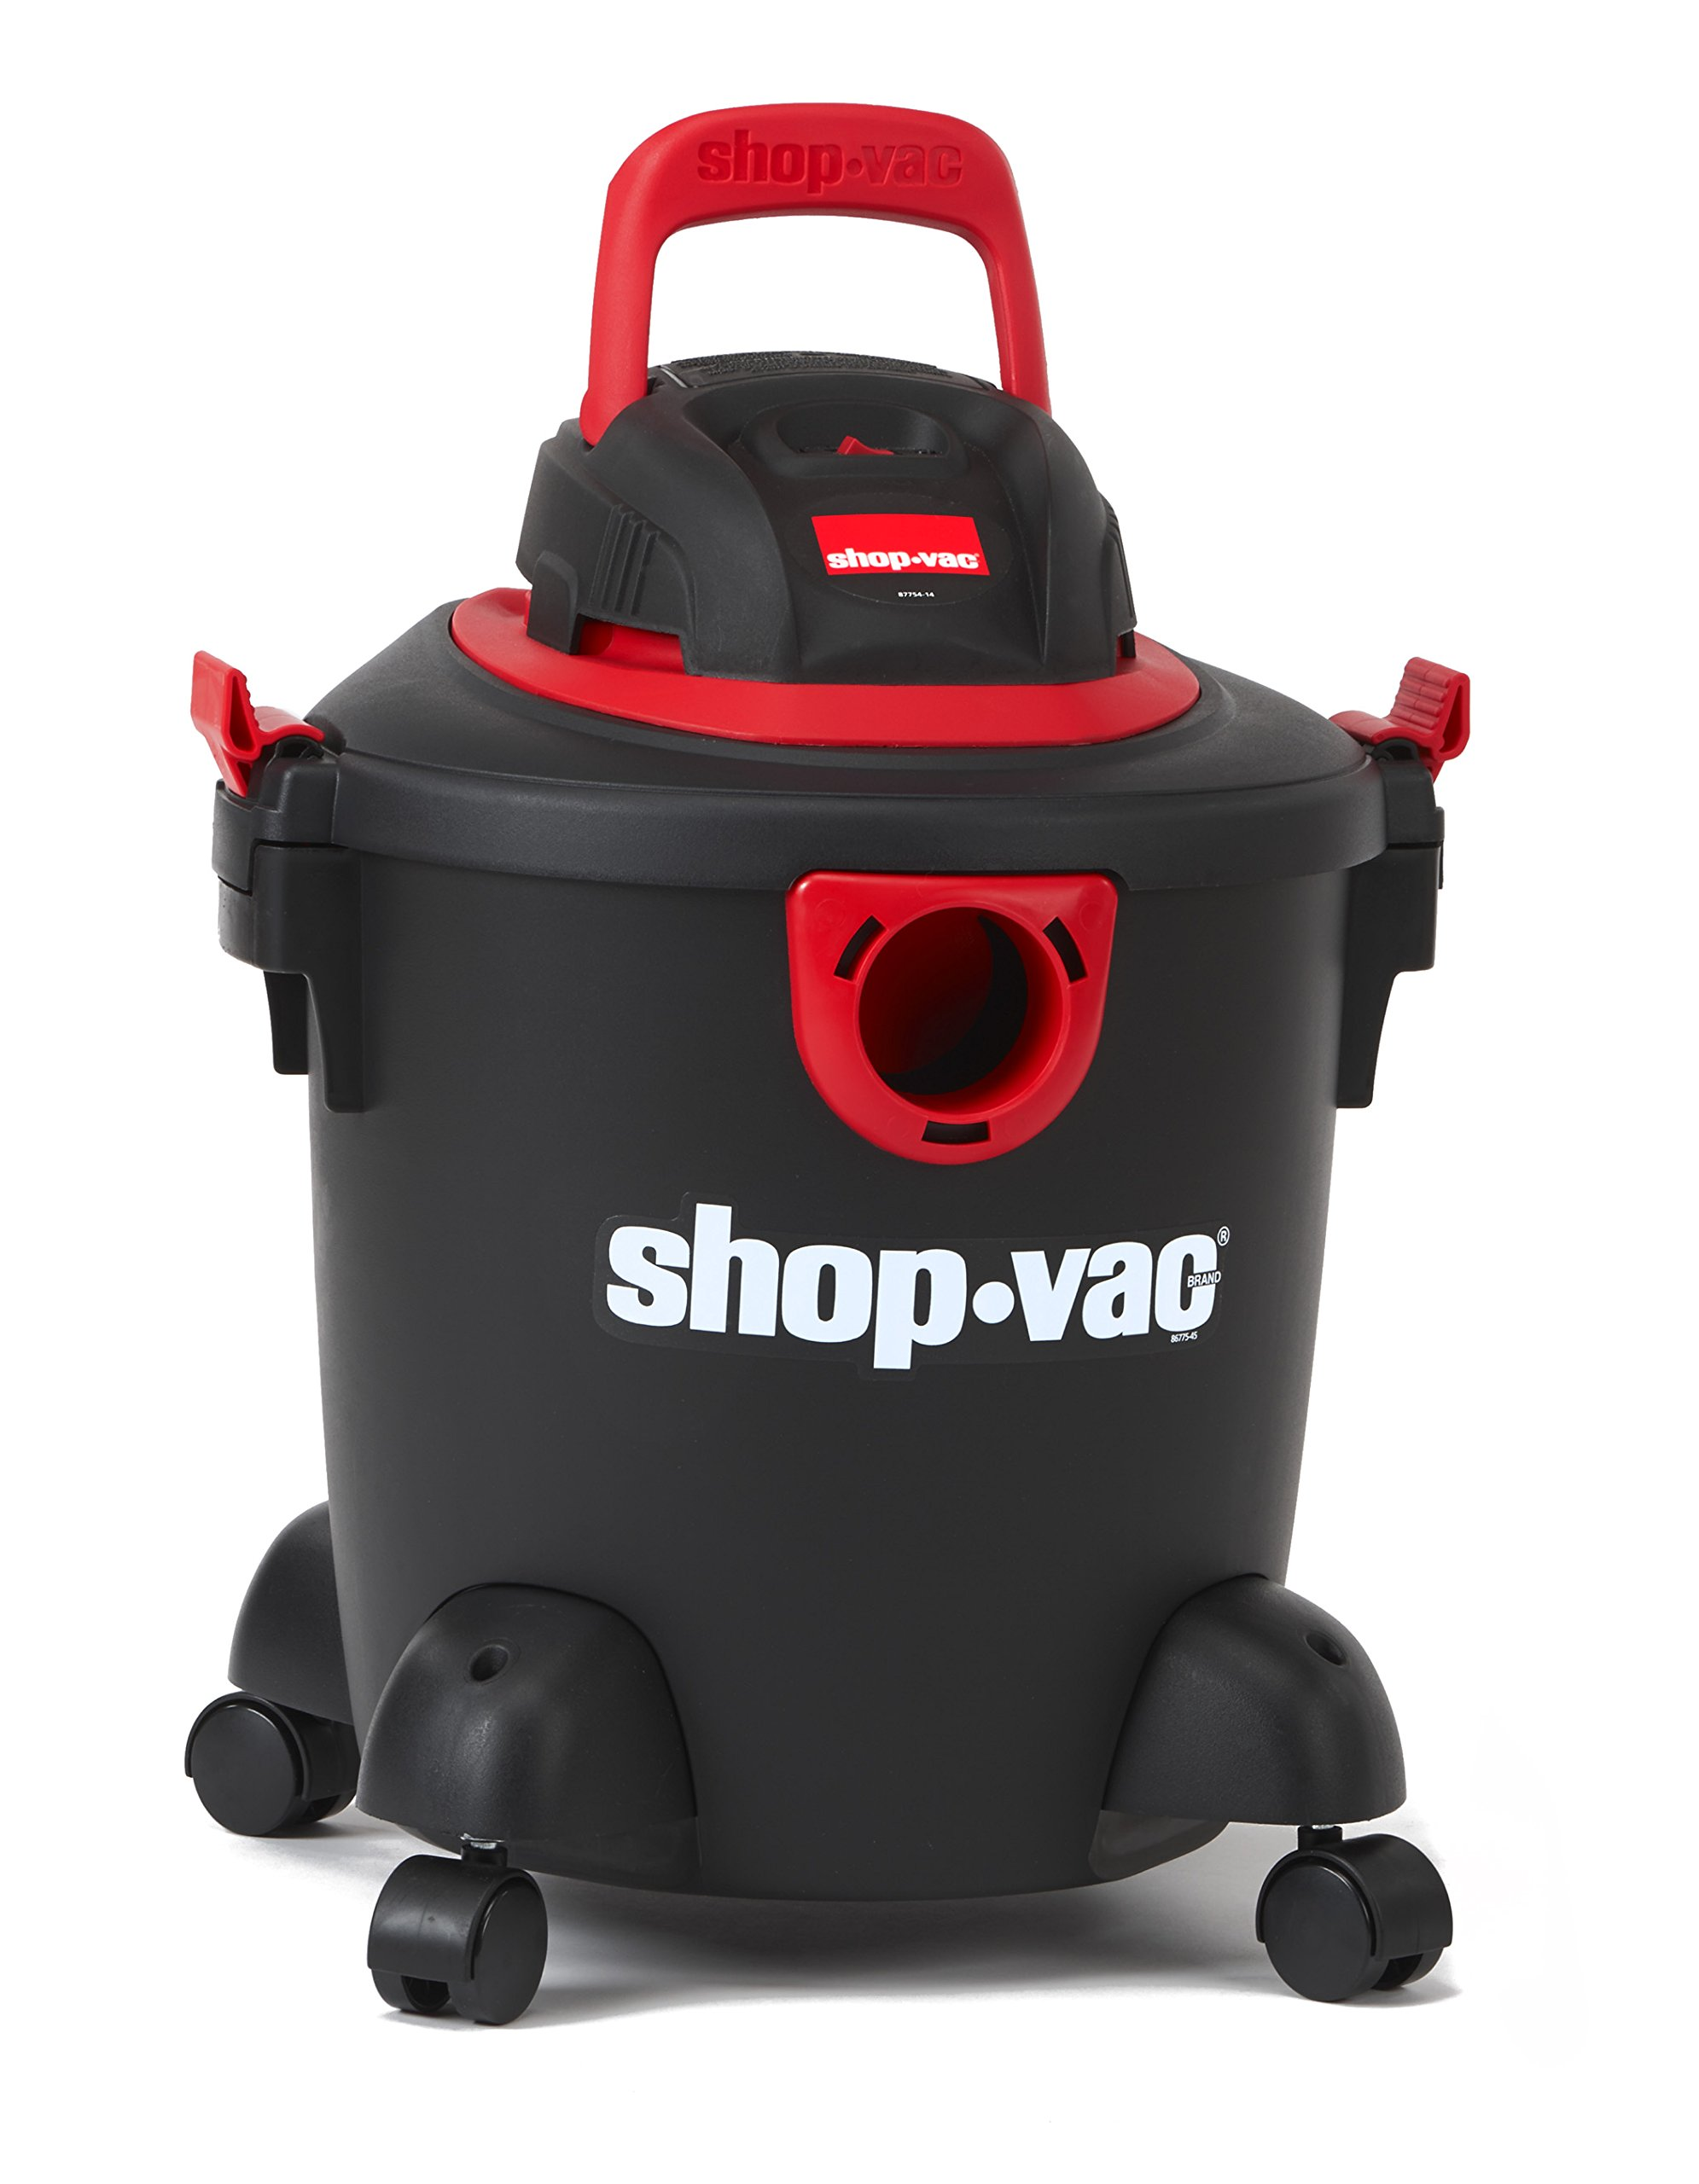 Shop-Vac 2035000 5 gallon 2.0 Peak HP Classic Wet Dry Vacuum Black/Red with Onboard Cord Tool Storage & Multifunction Accessories, Uses Type S Disc Filter & Type R Foam Sleeve by Shop-Vac